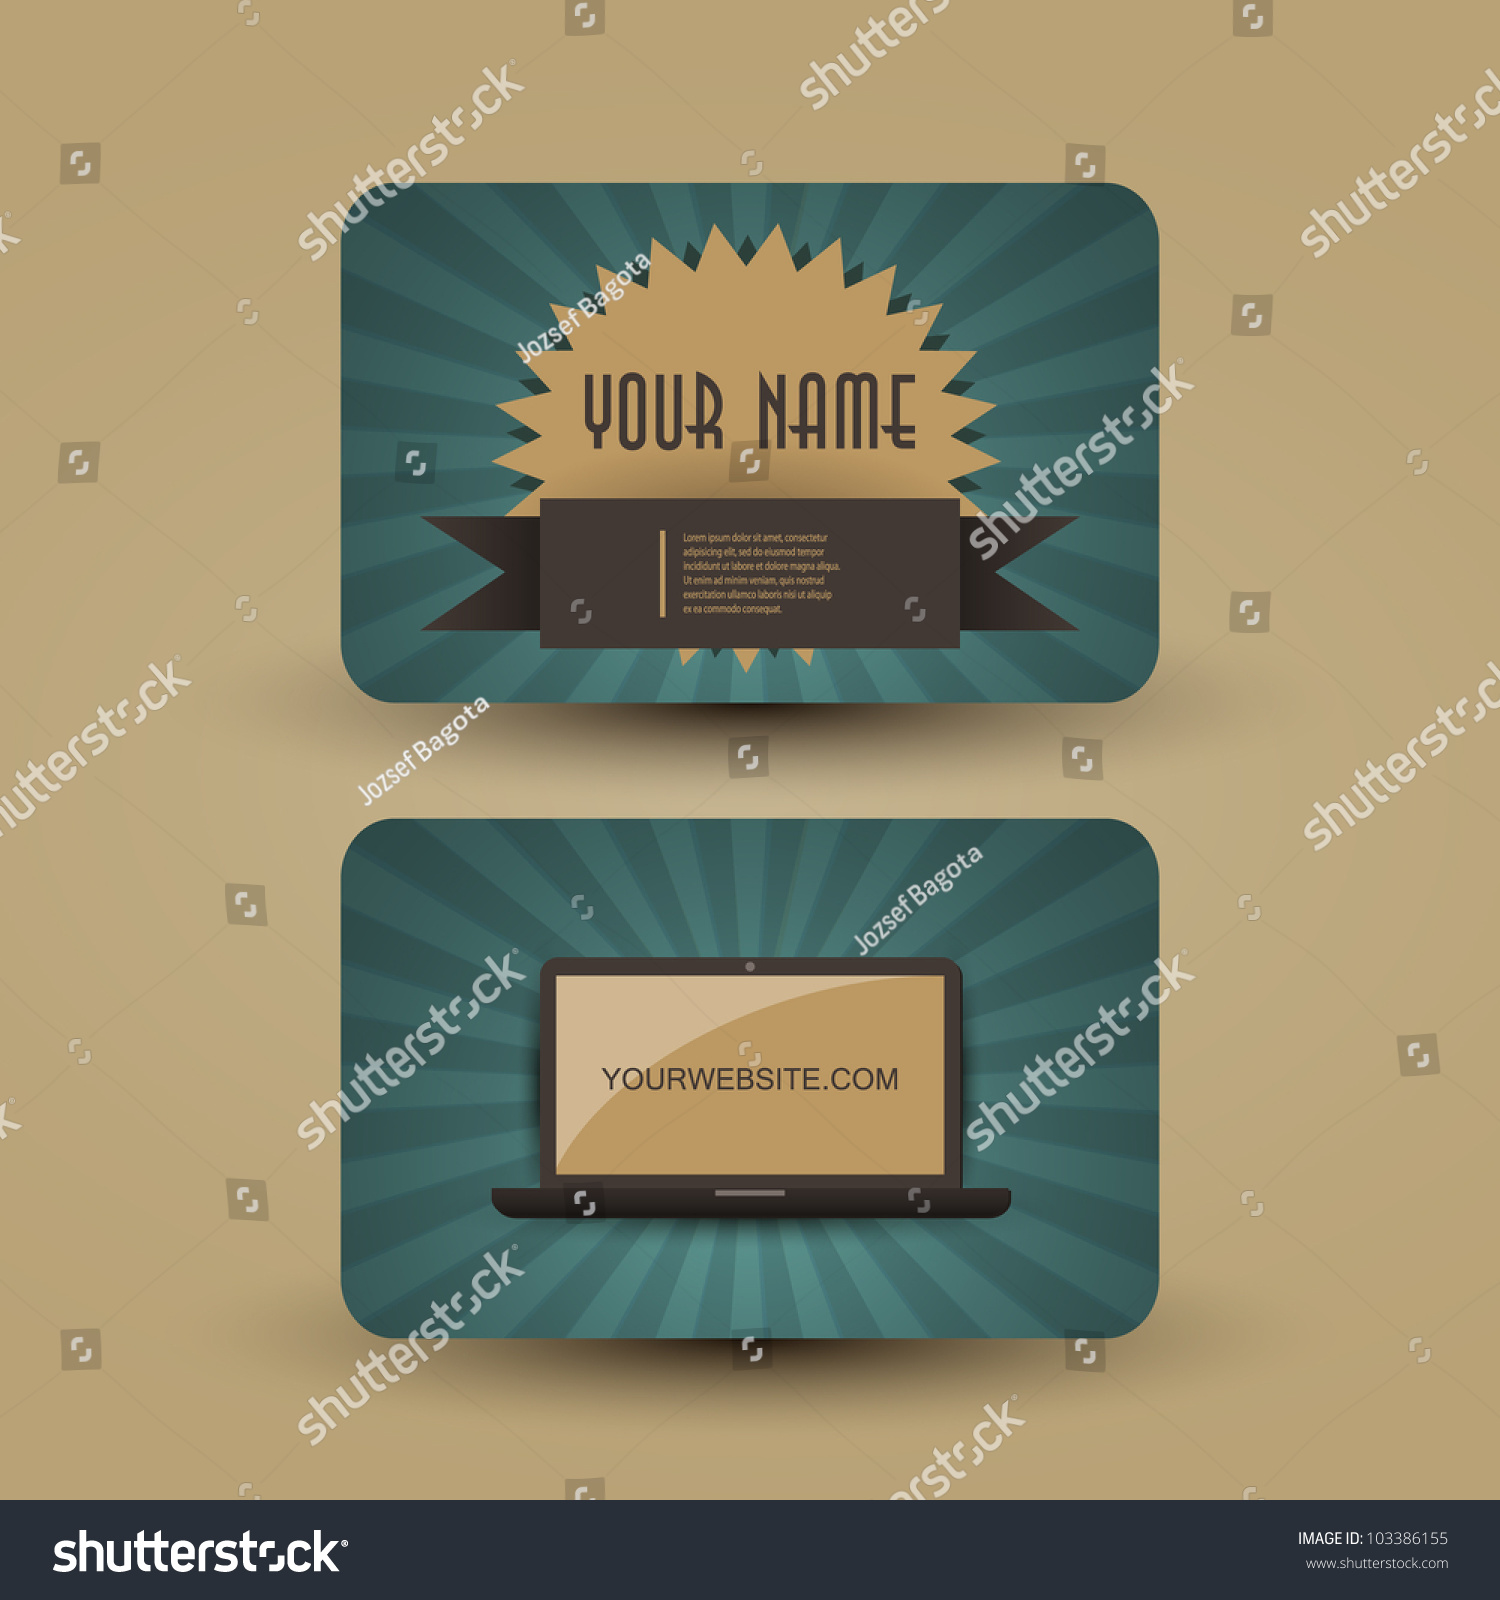 Retro Business Card Template Stock Photo (Photo, Vector ...